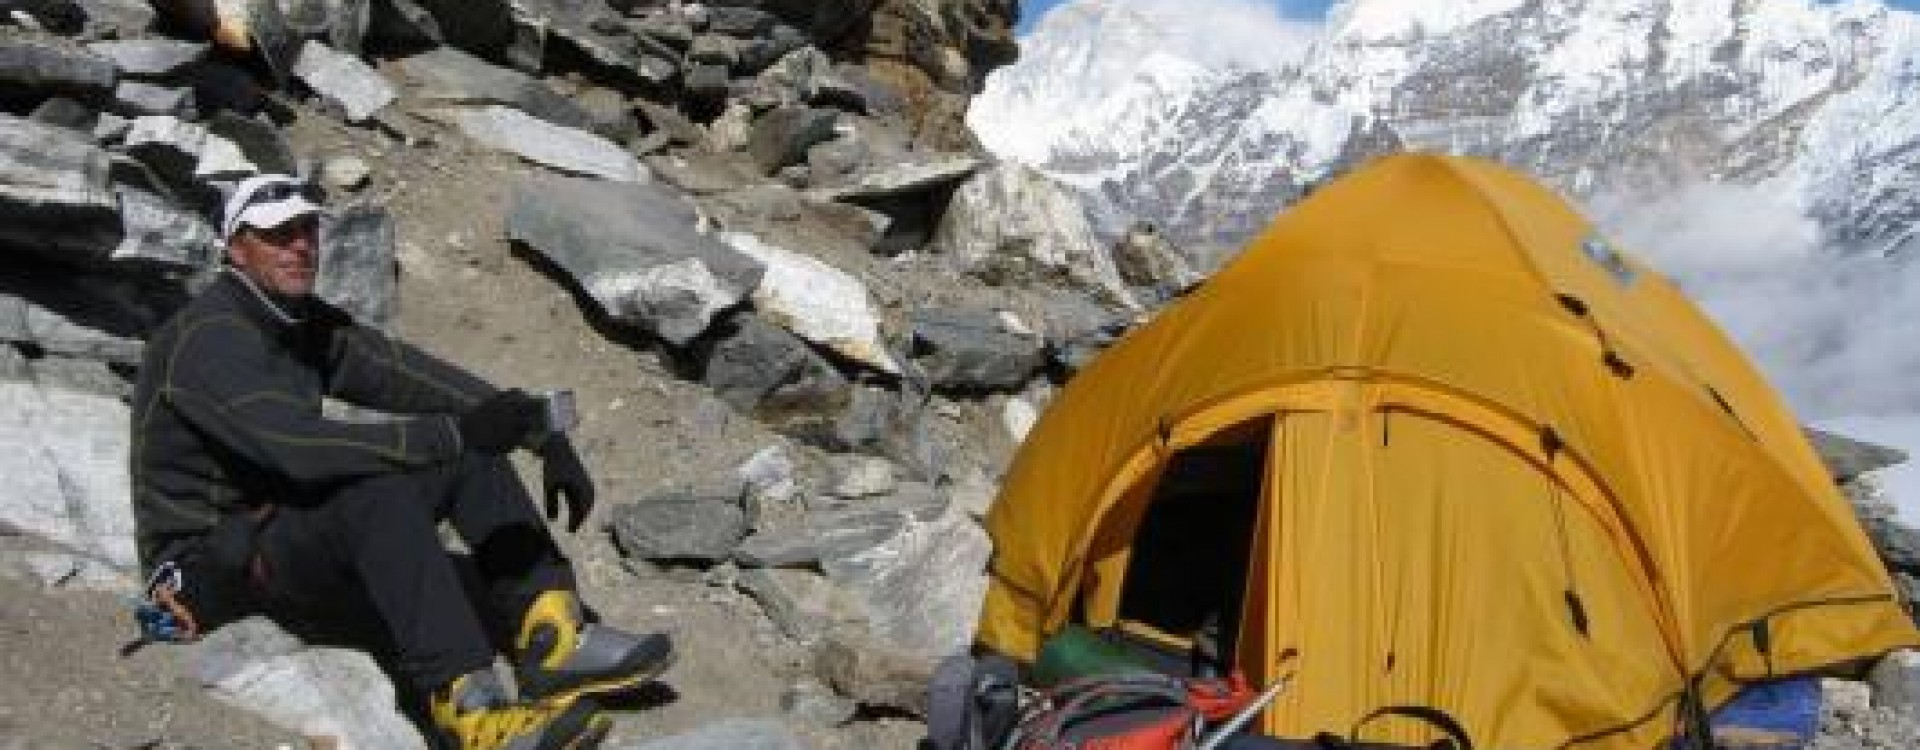 High Camp at 5800 metres on Mera Peak